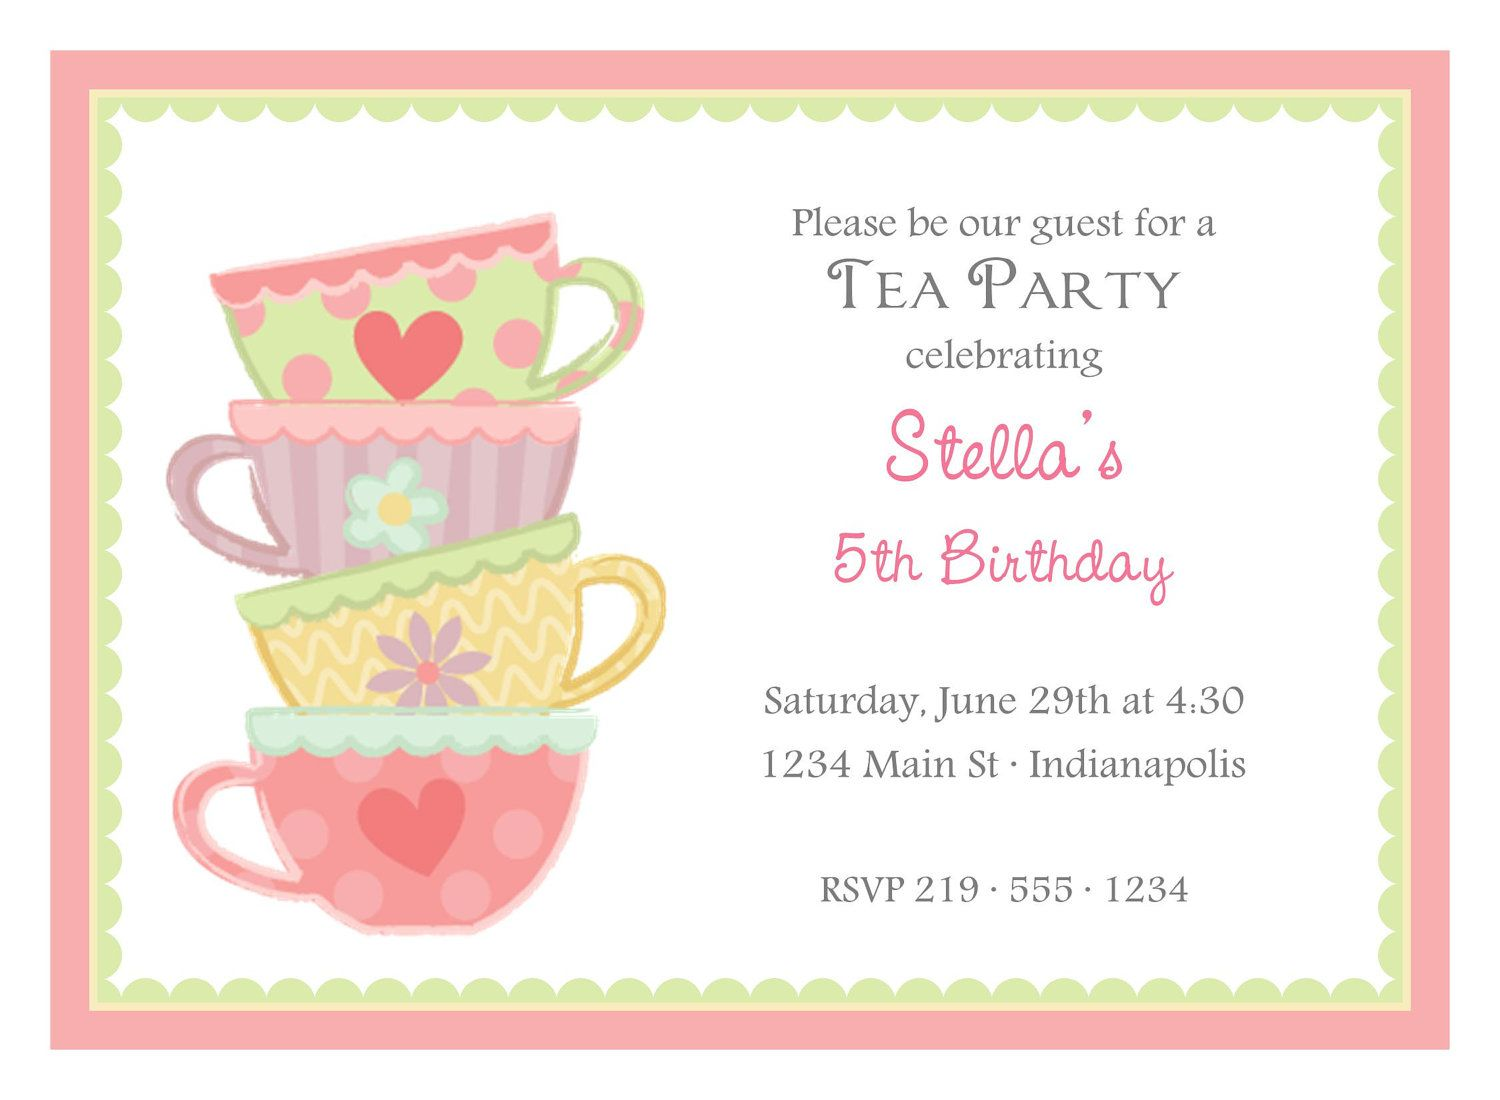 tea party invitation template Google Search Tea Party invitation